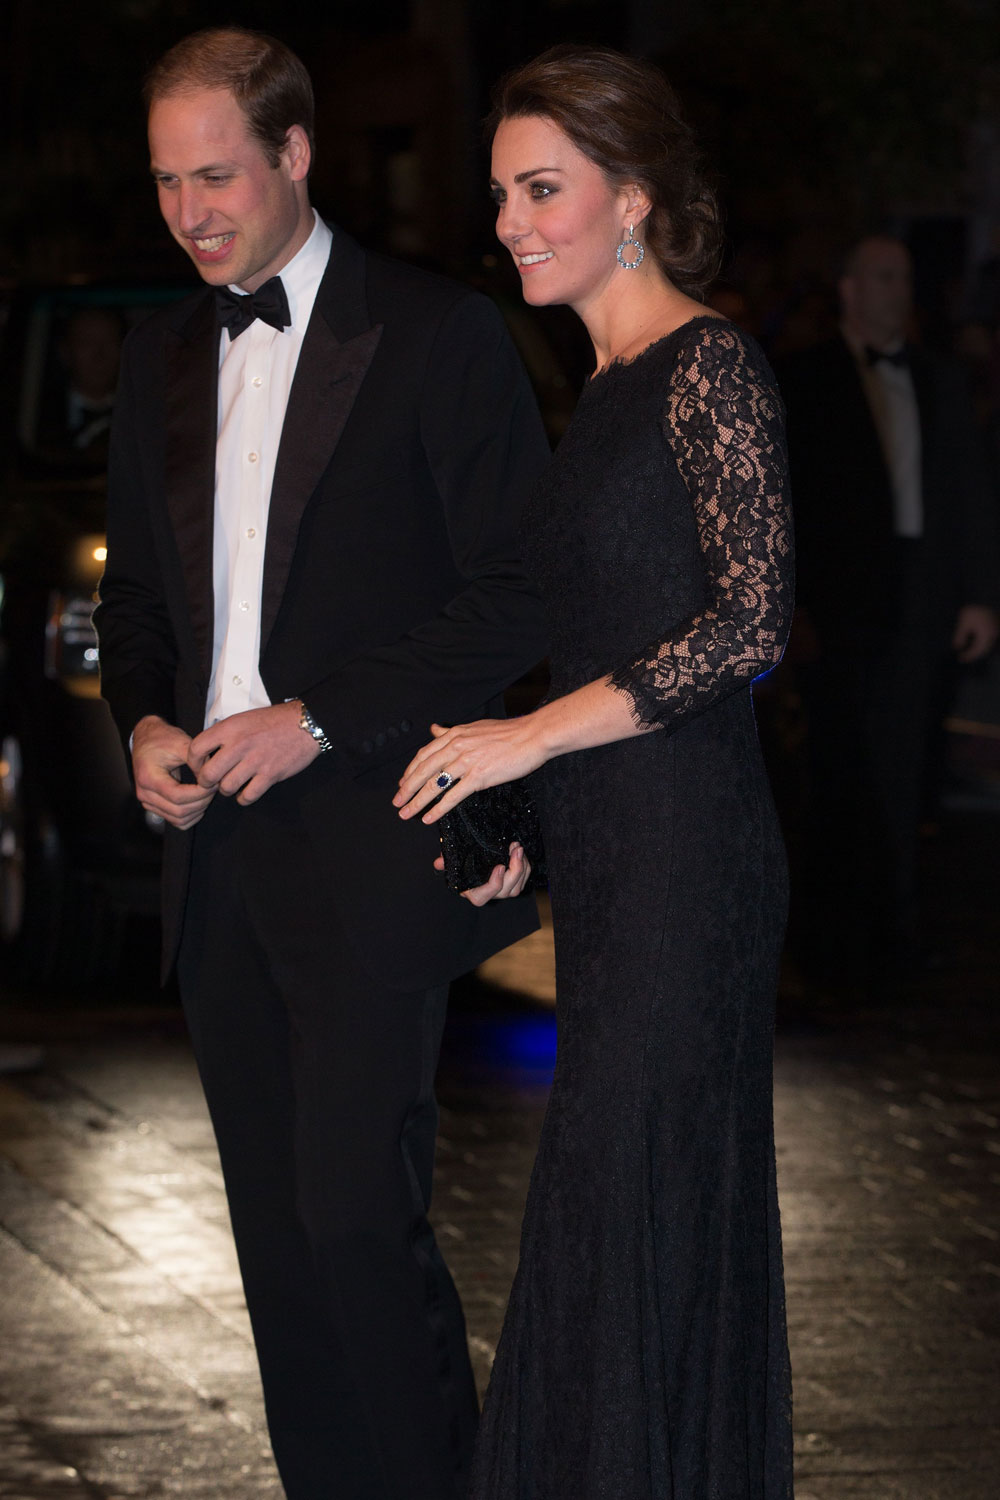 What Would You Wear To Meet Wills And Kate?